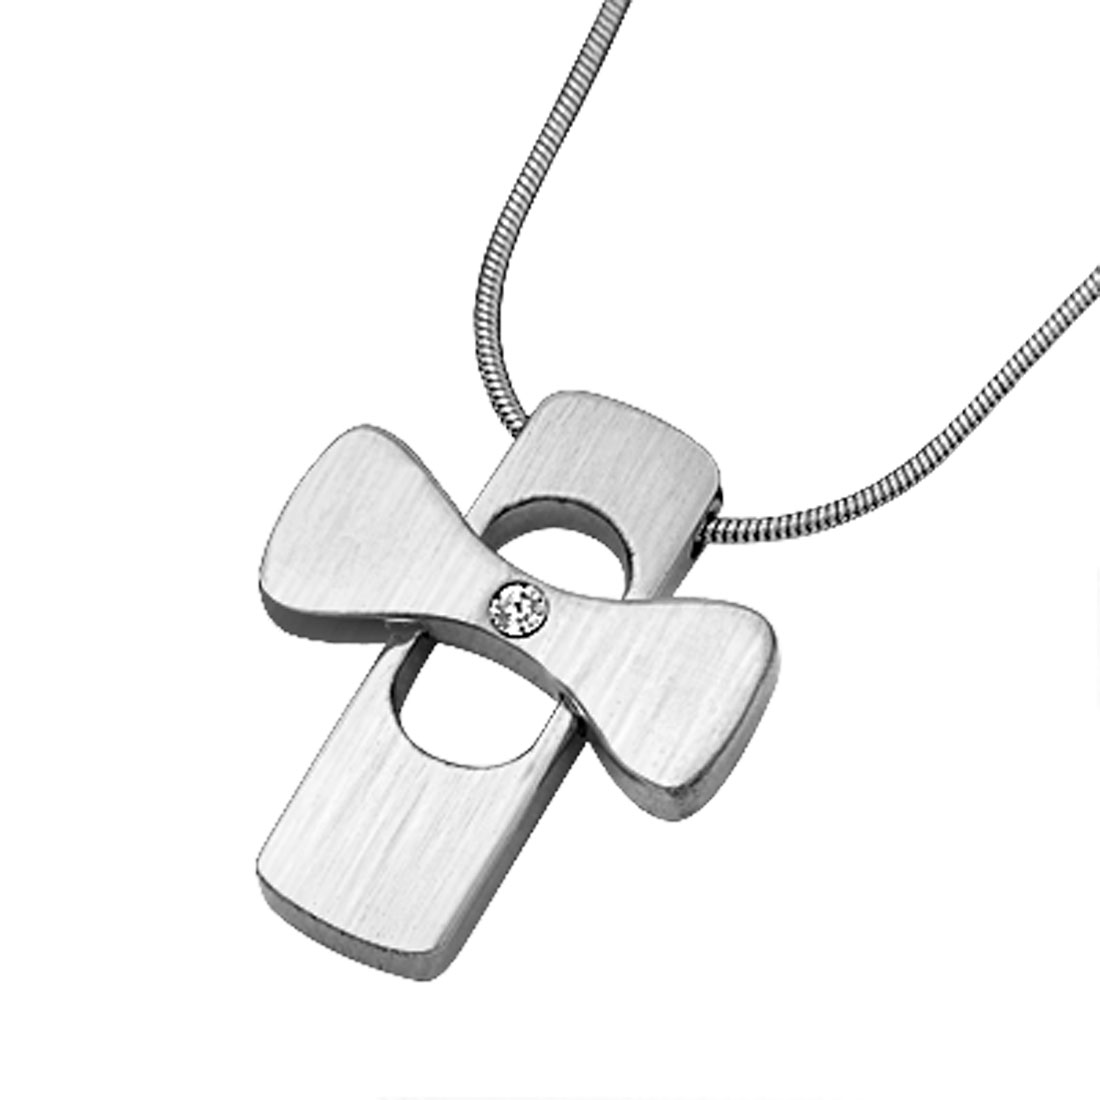 Polished Metal Sturdy Cross Pendant Stylish Necklace with Silvery Neck Chain